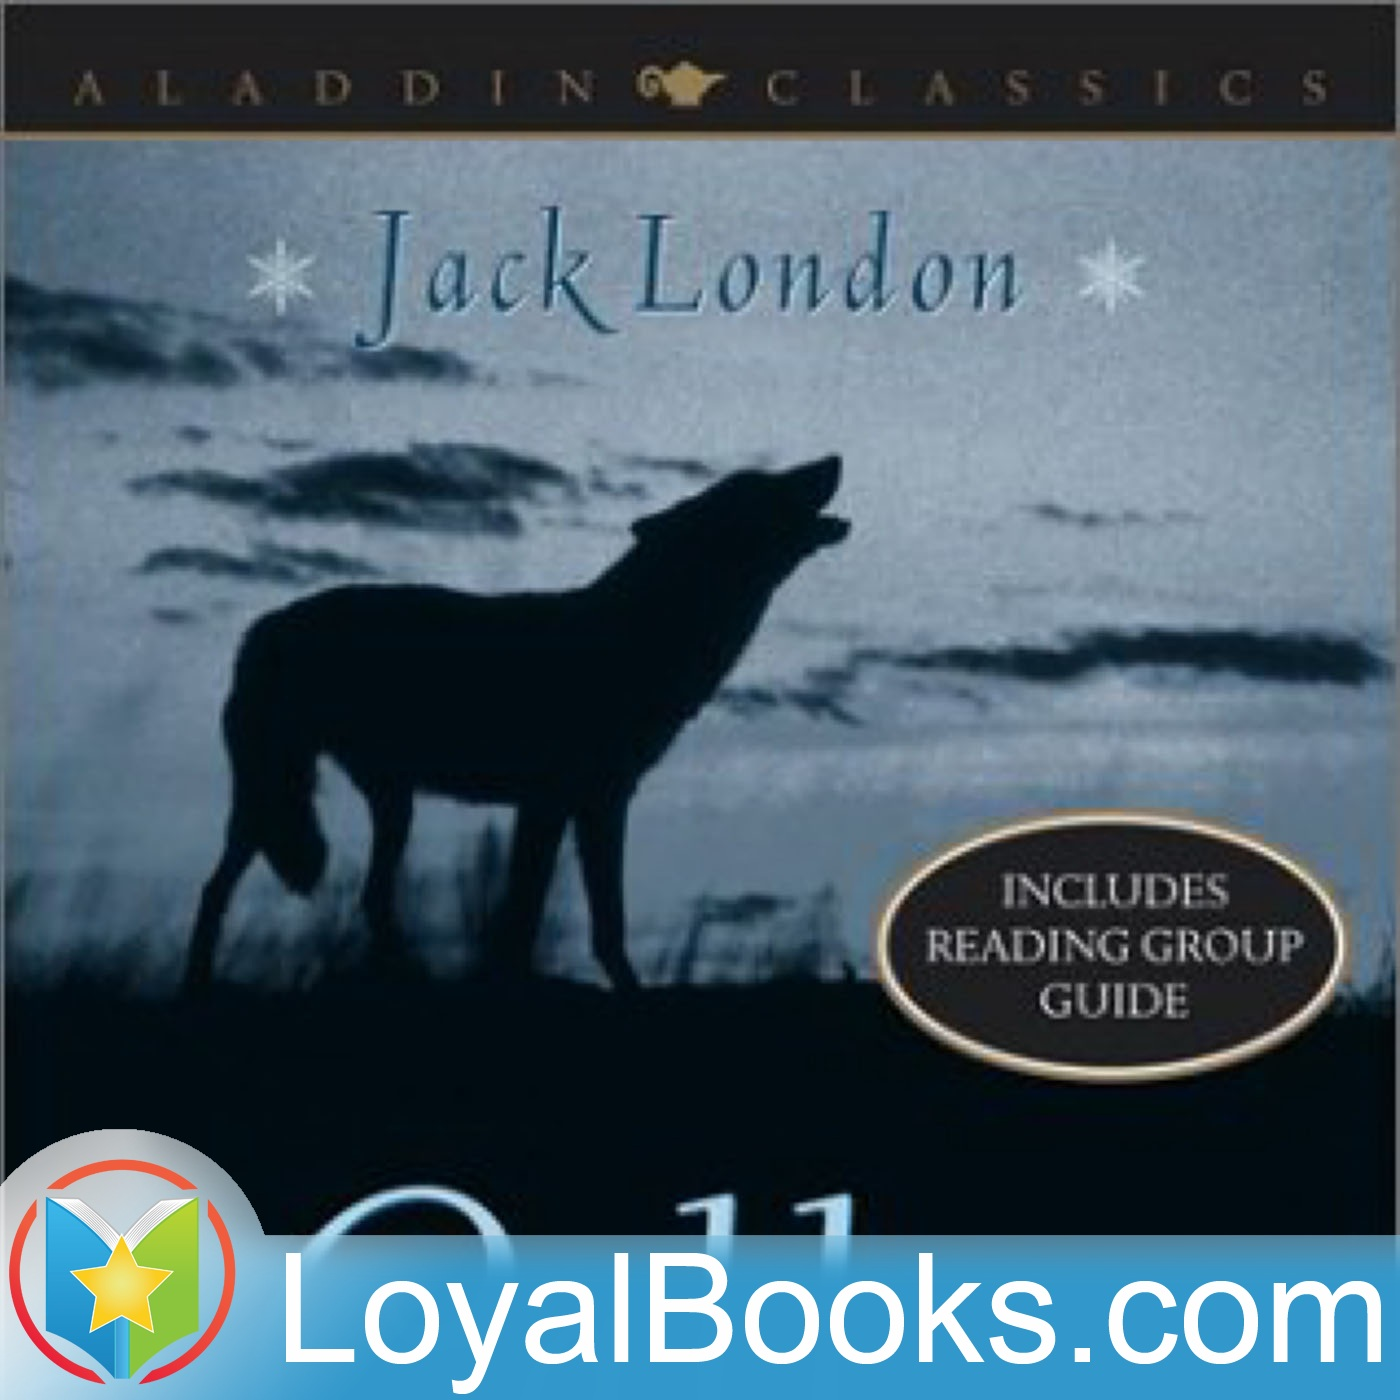 <![CDATA[The Call of the Wild by Jack London]]>